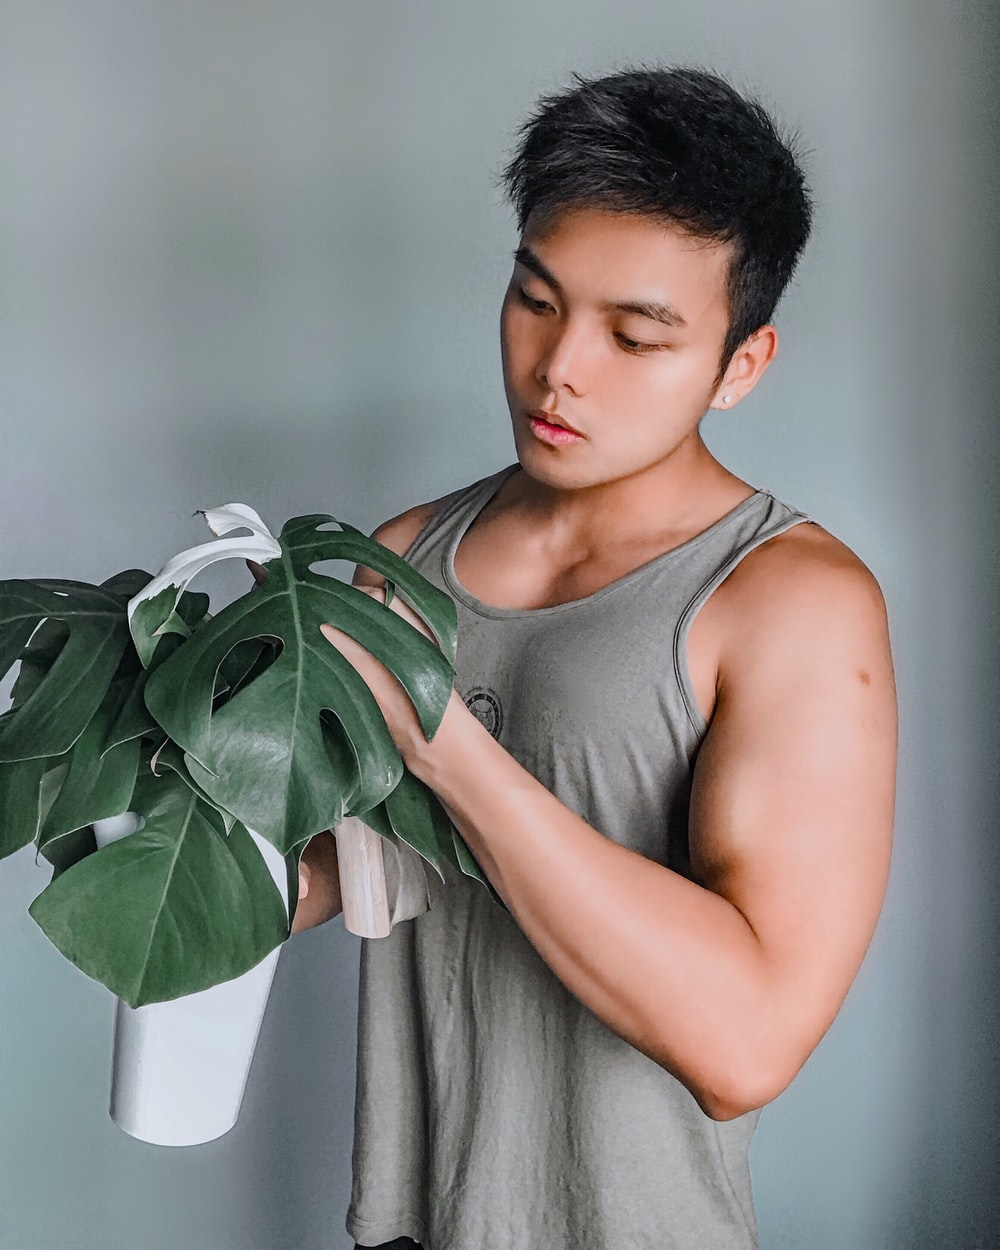 woman in gray tank top holding green plant